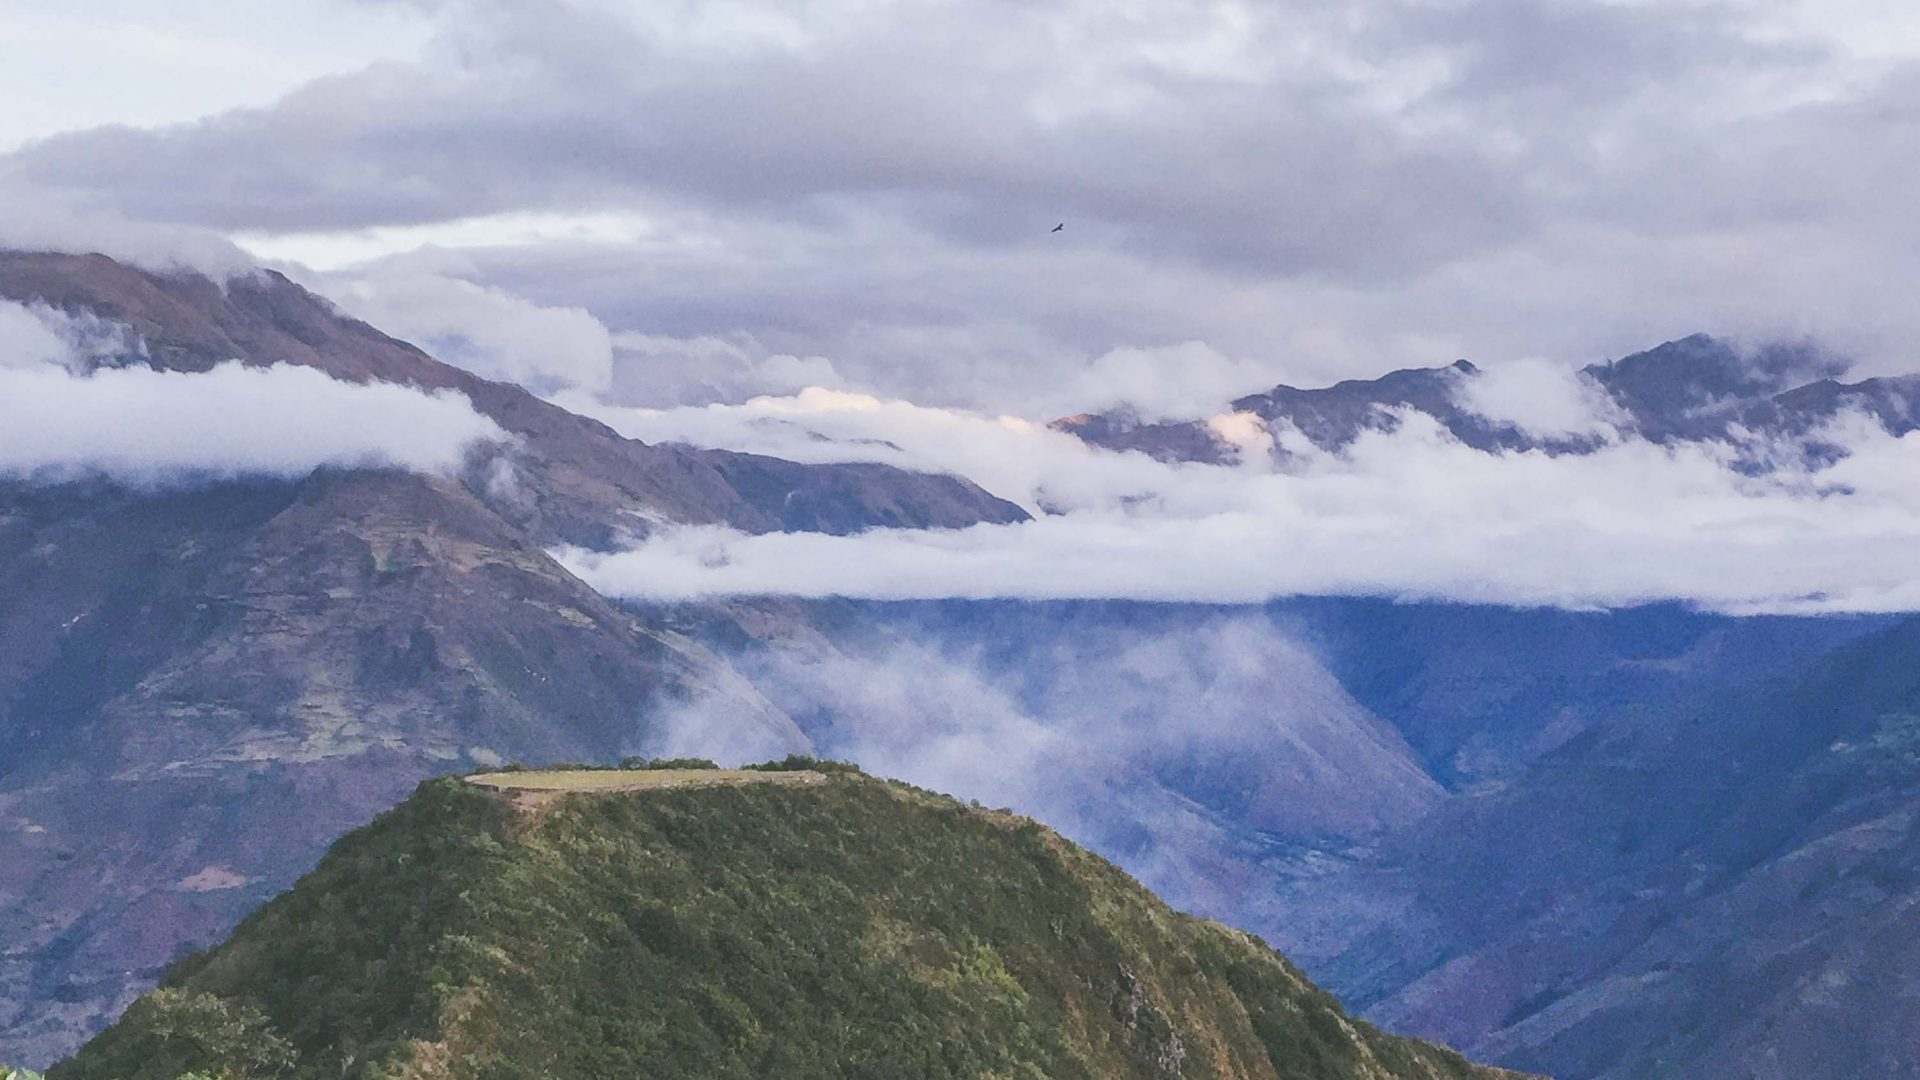 The stunning mountains in the Andes surrounding Choquequirao in Peru.